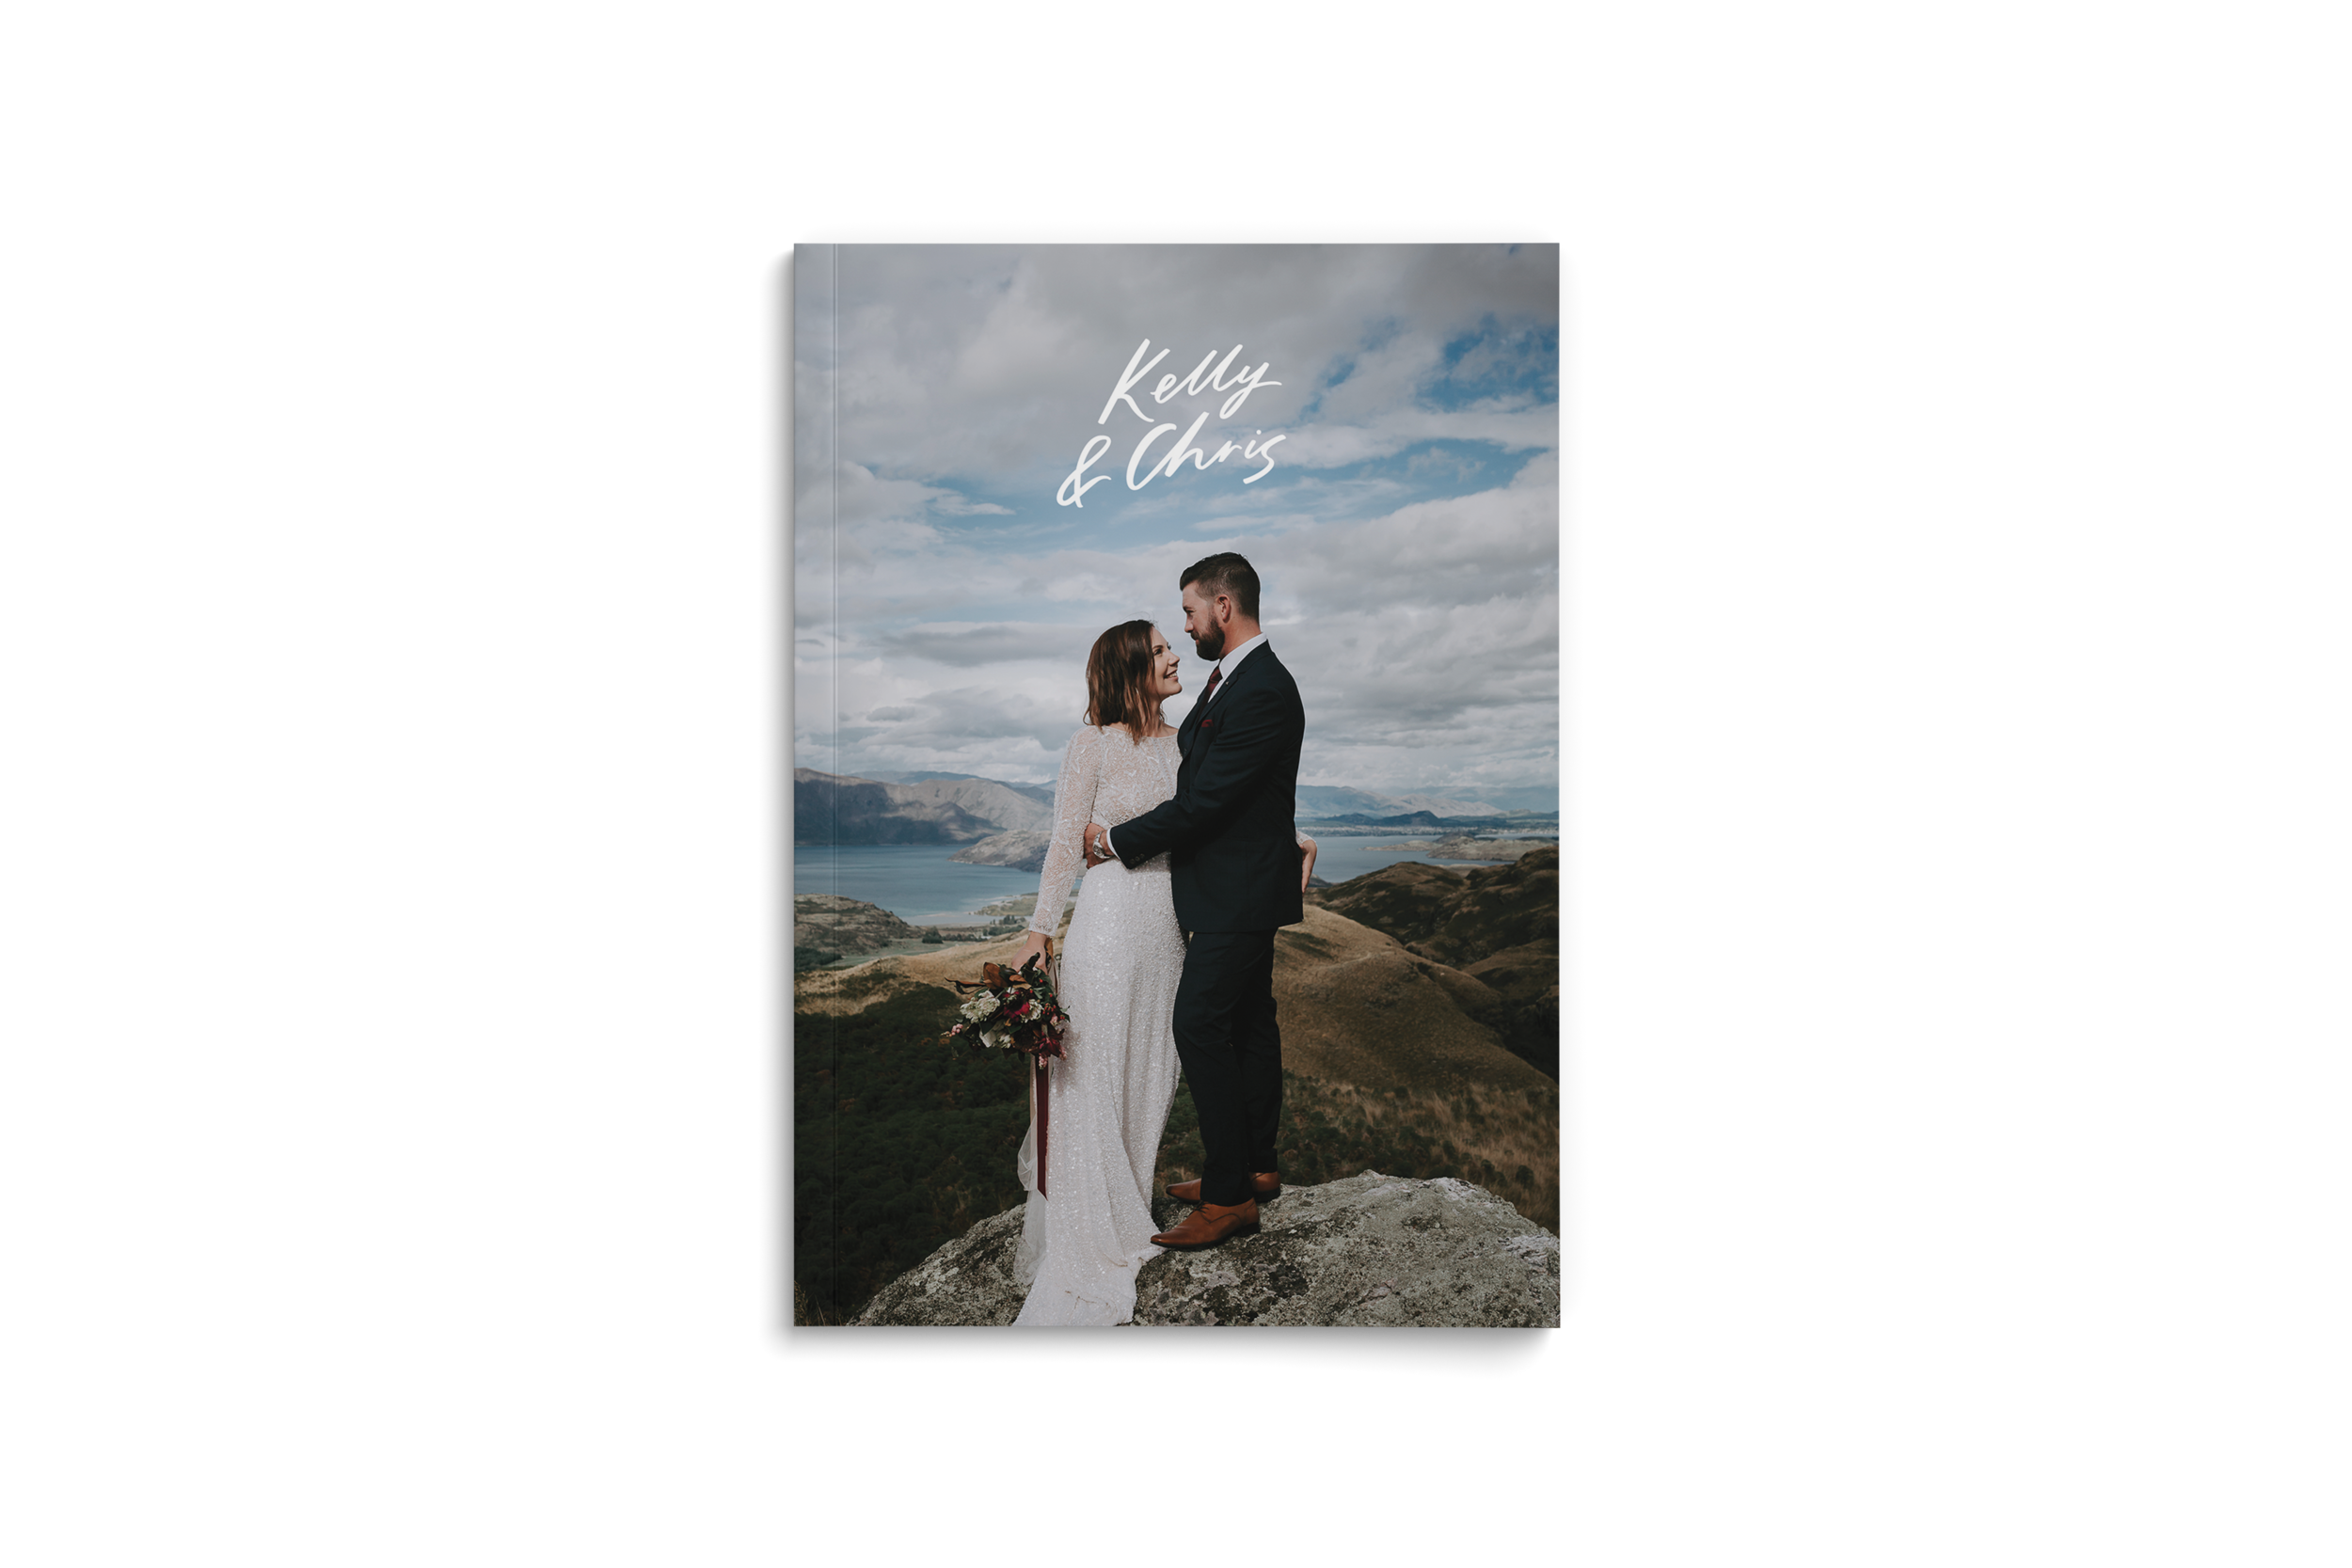 Kelly-Chris-Wedding-Zine-Cover.png